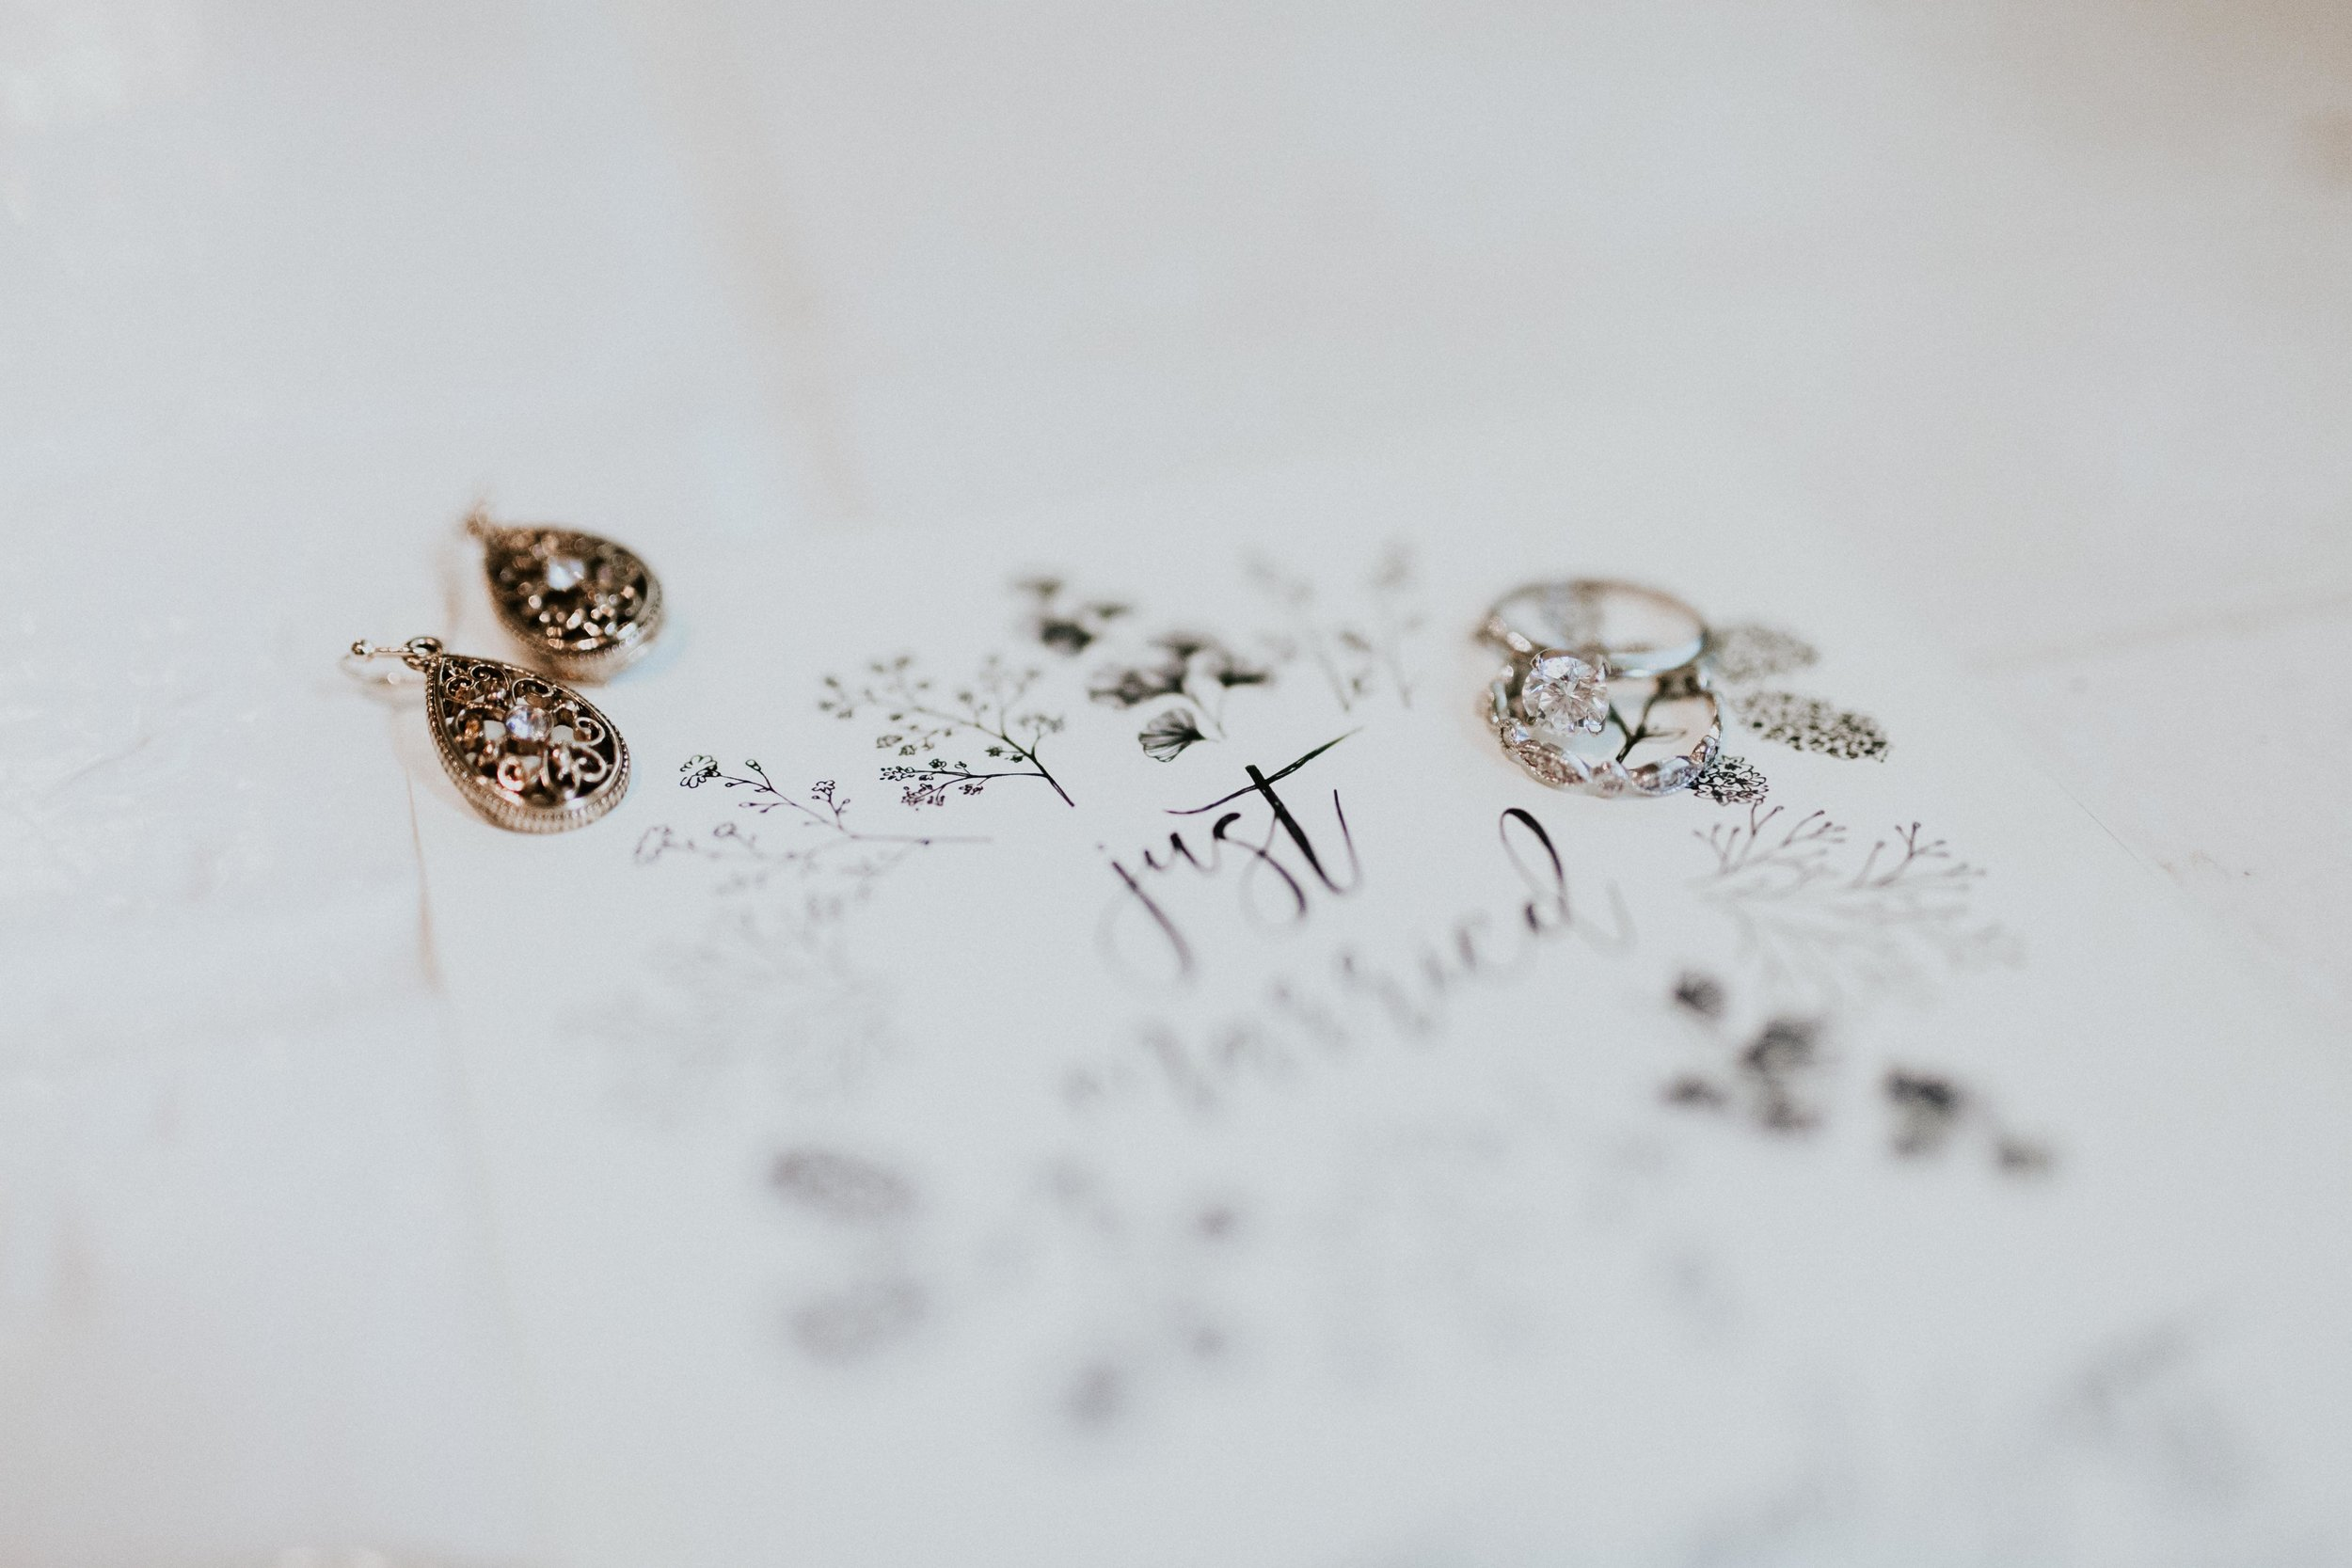 Vow Renewal in Magnolia Texas - Madeleine Frost Wedding Photographer - Sized for Blog-3.jpg